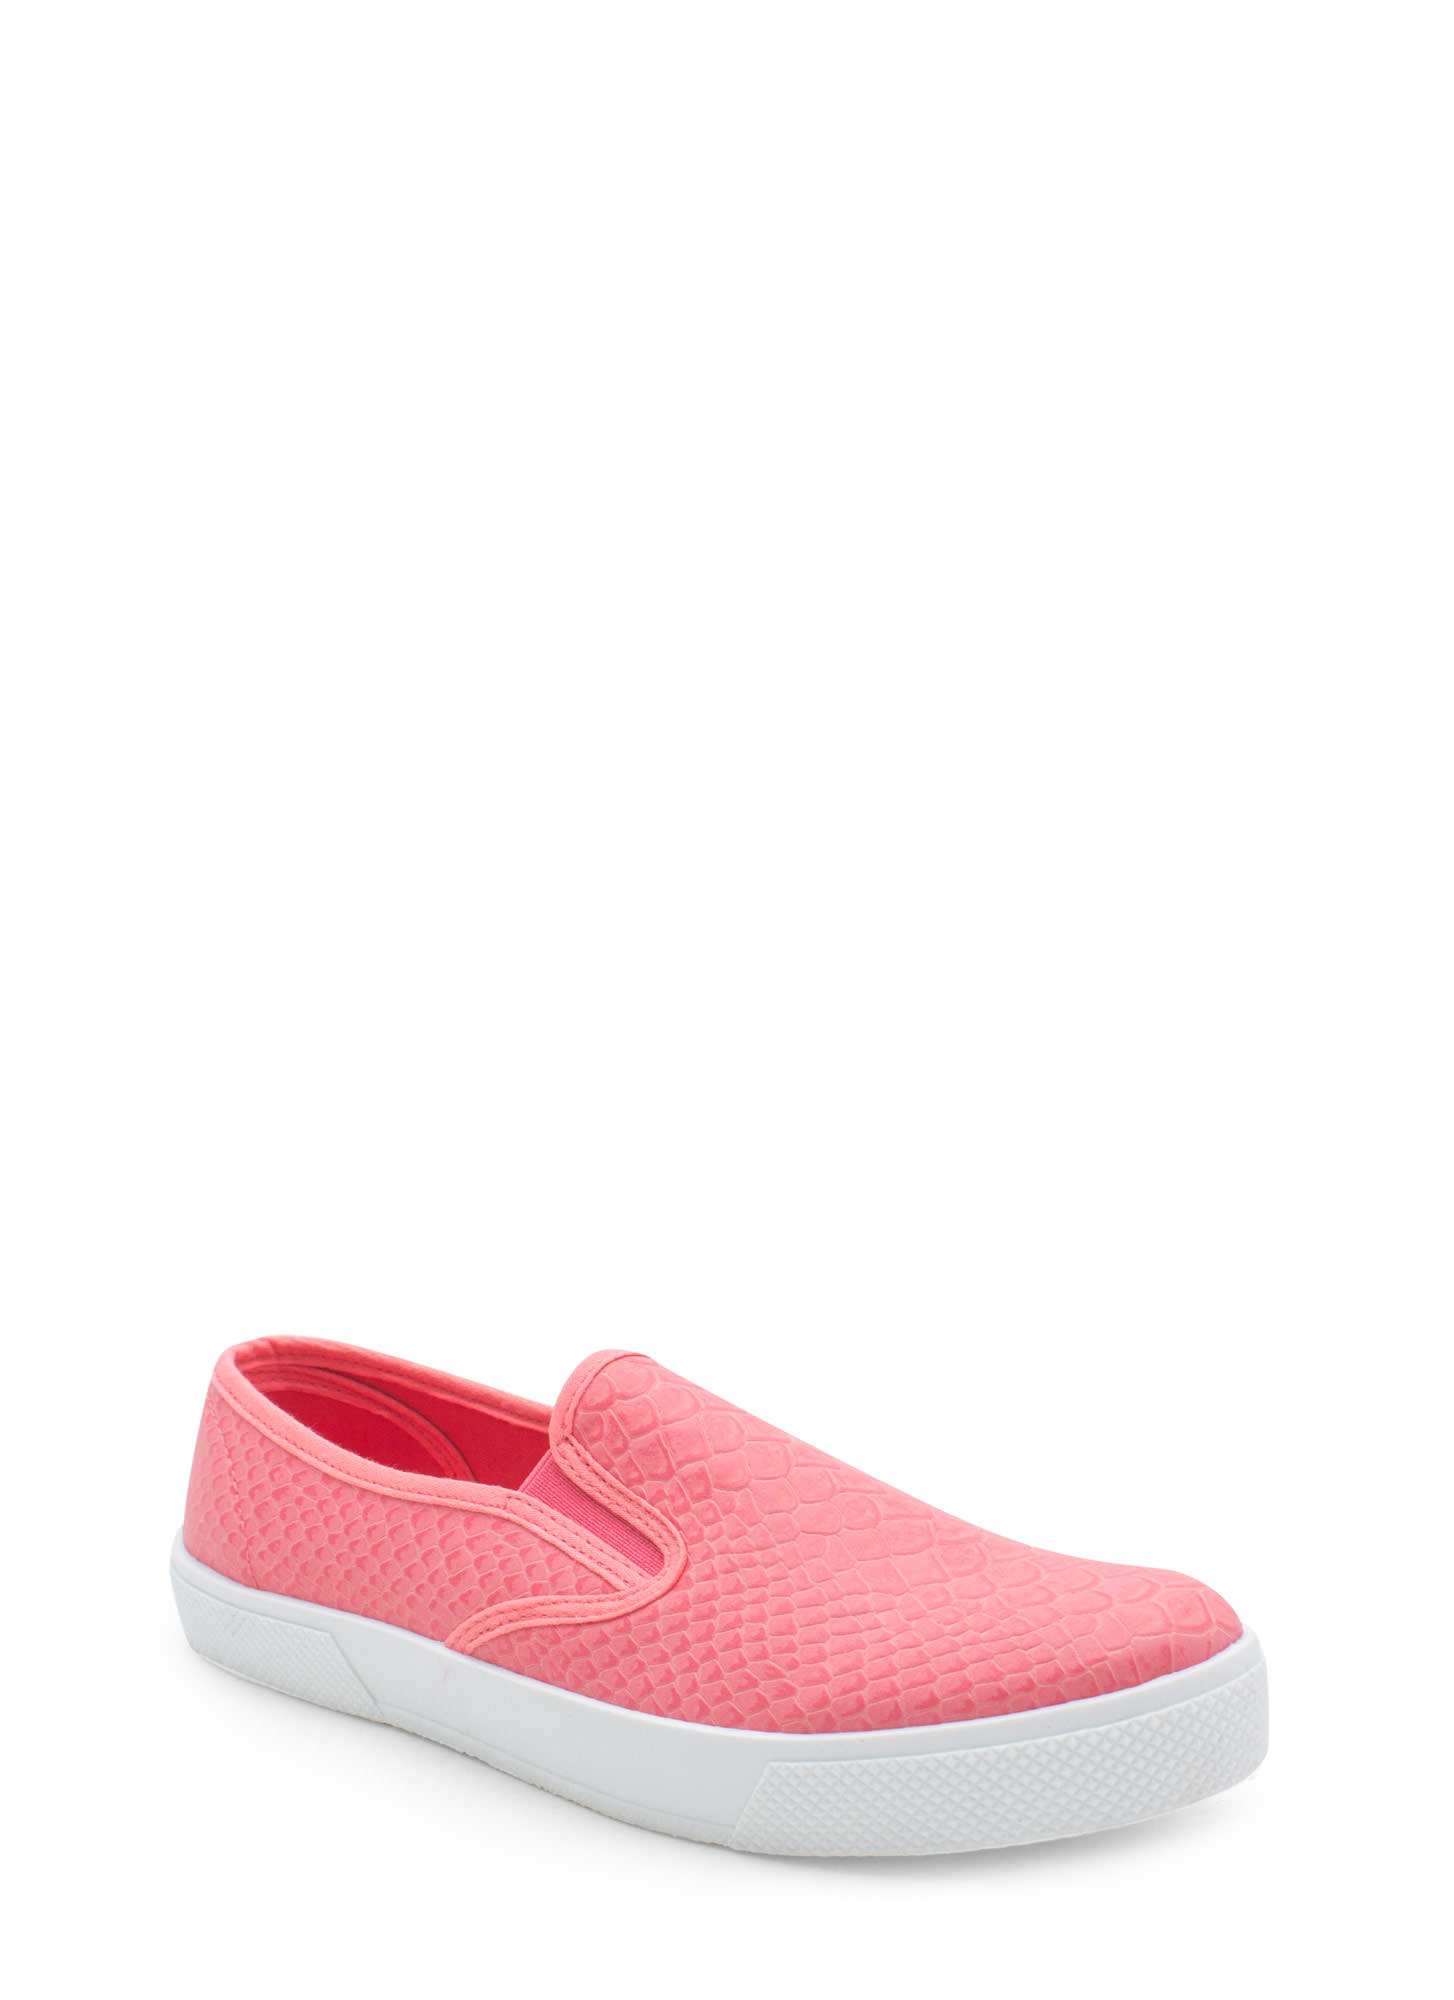 Come Slither Scaled Slip-On Sneakers PINK